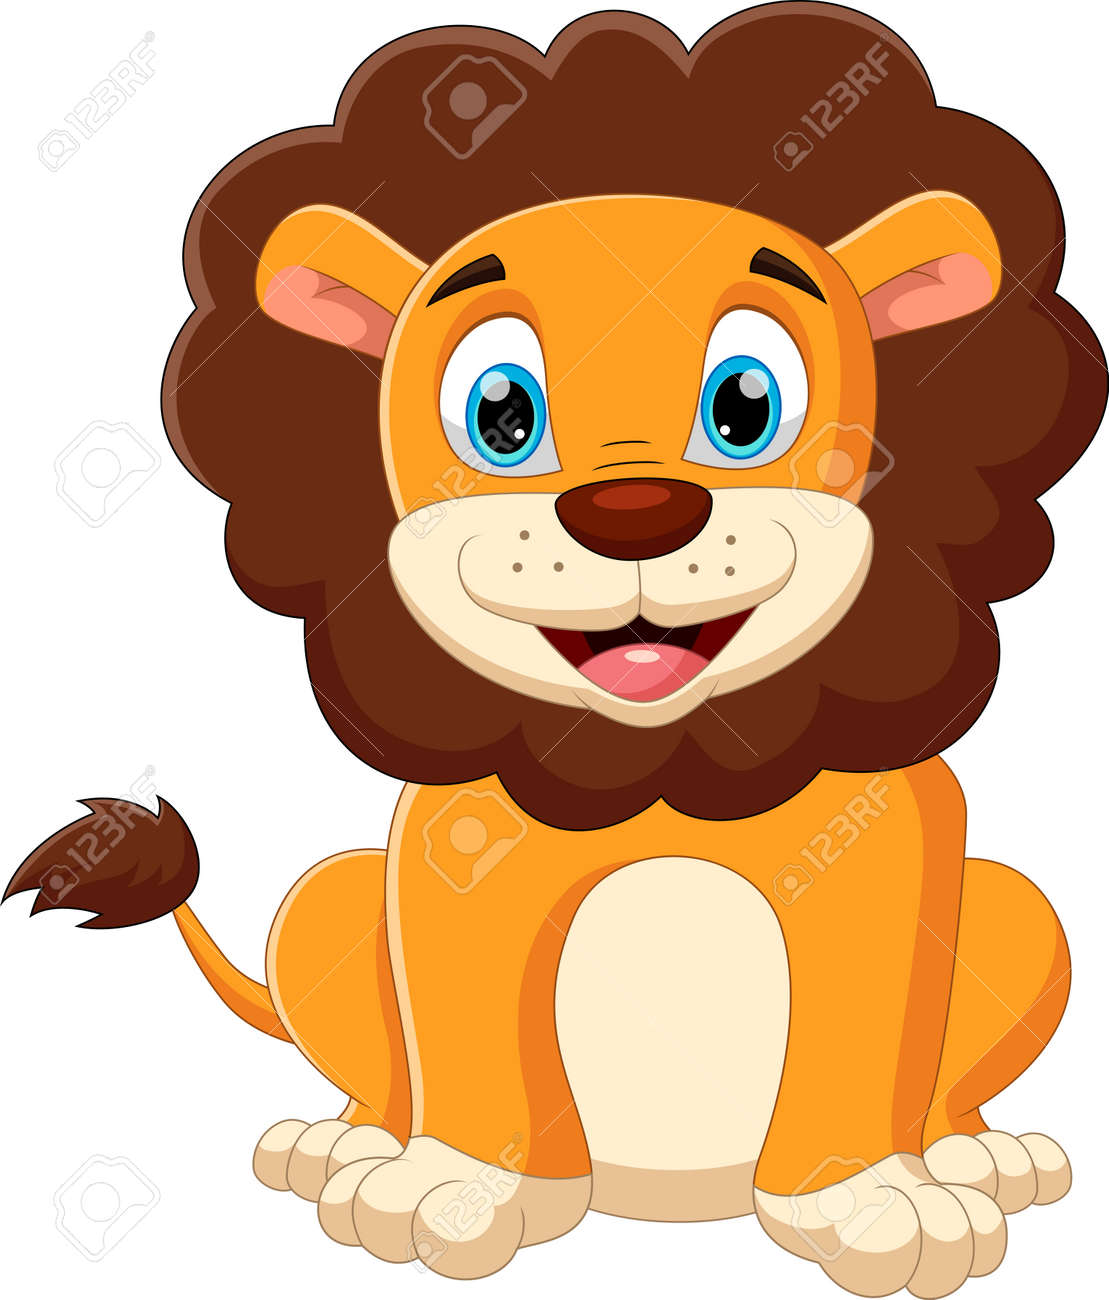 cartoon baby lion posing with smile - 168593010